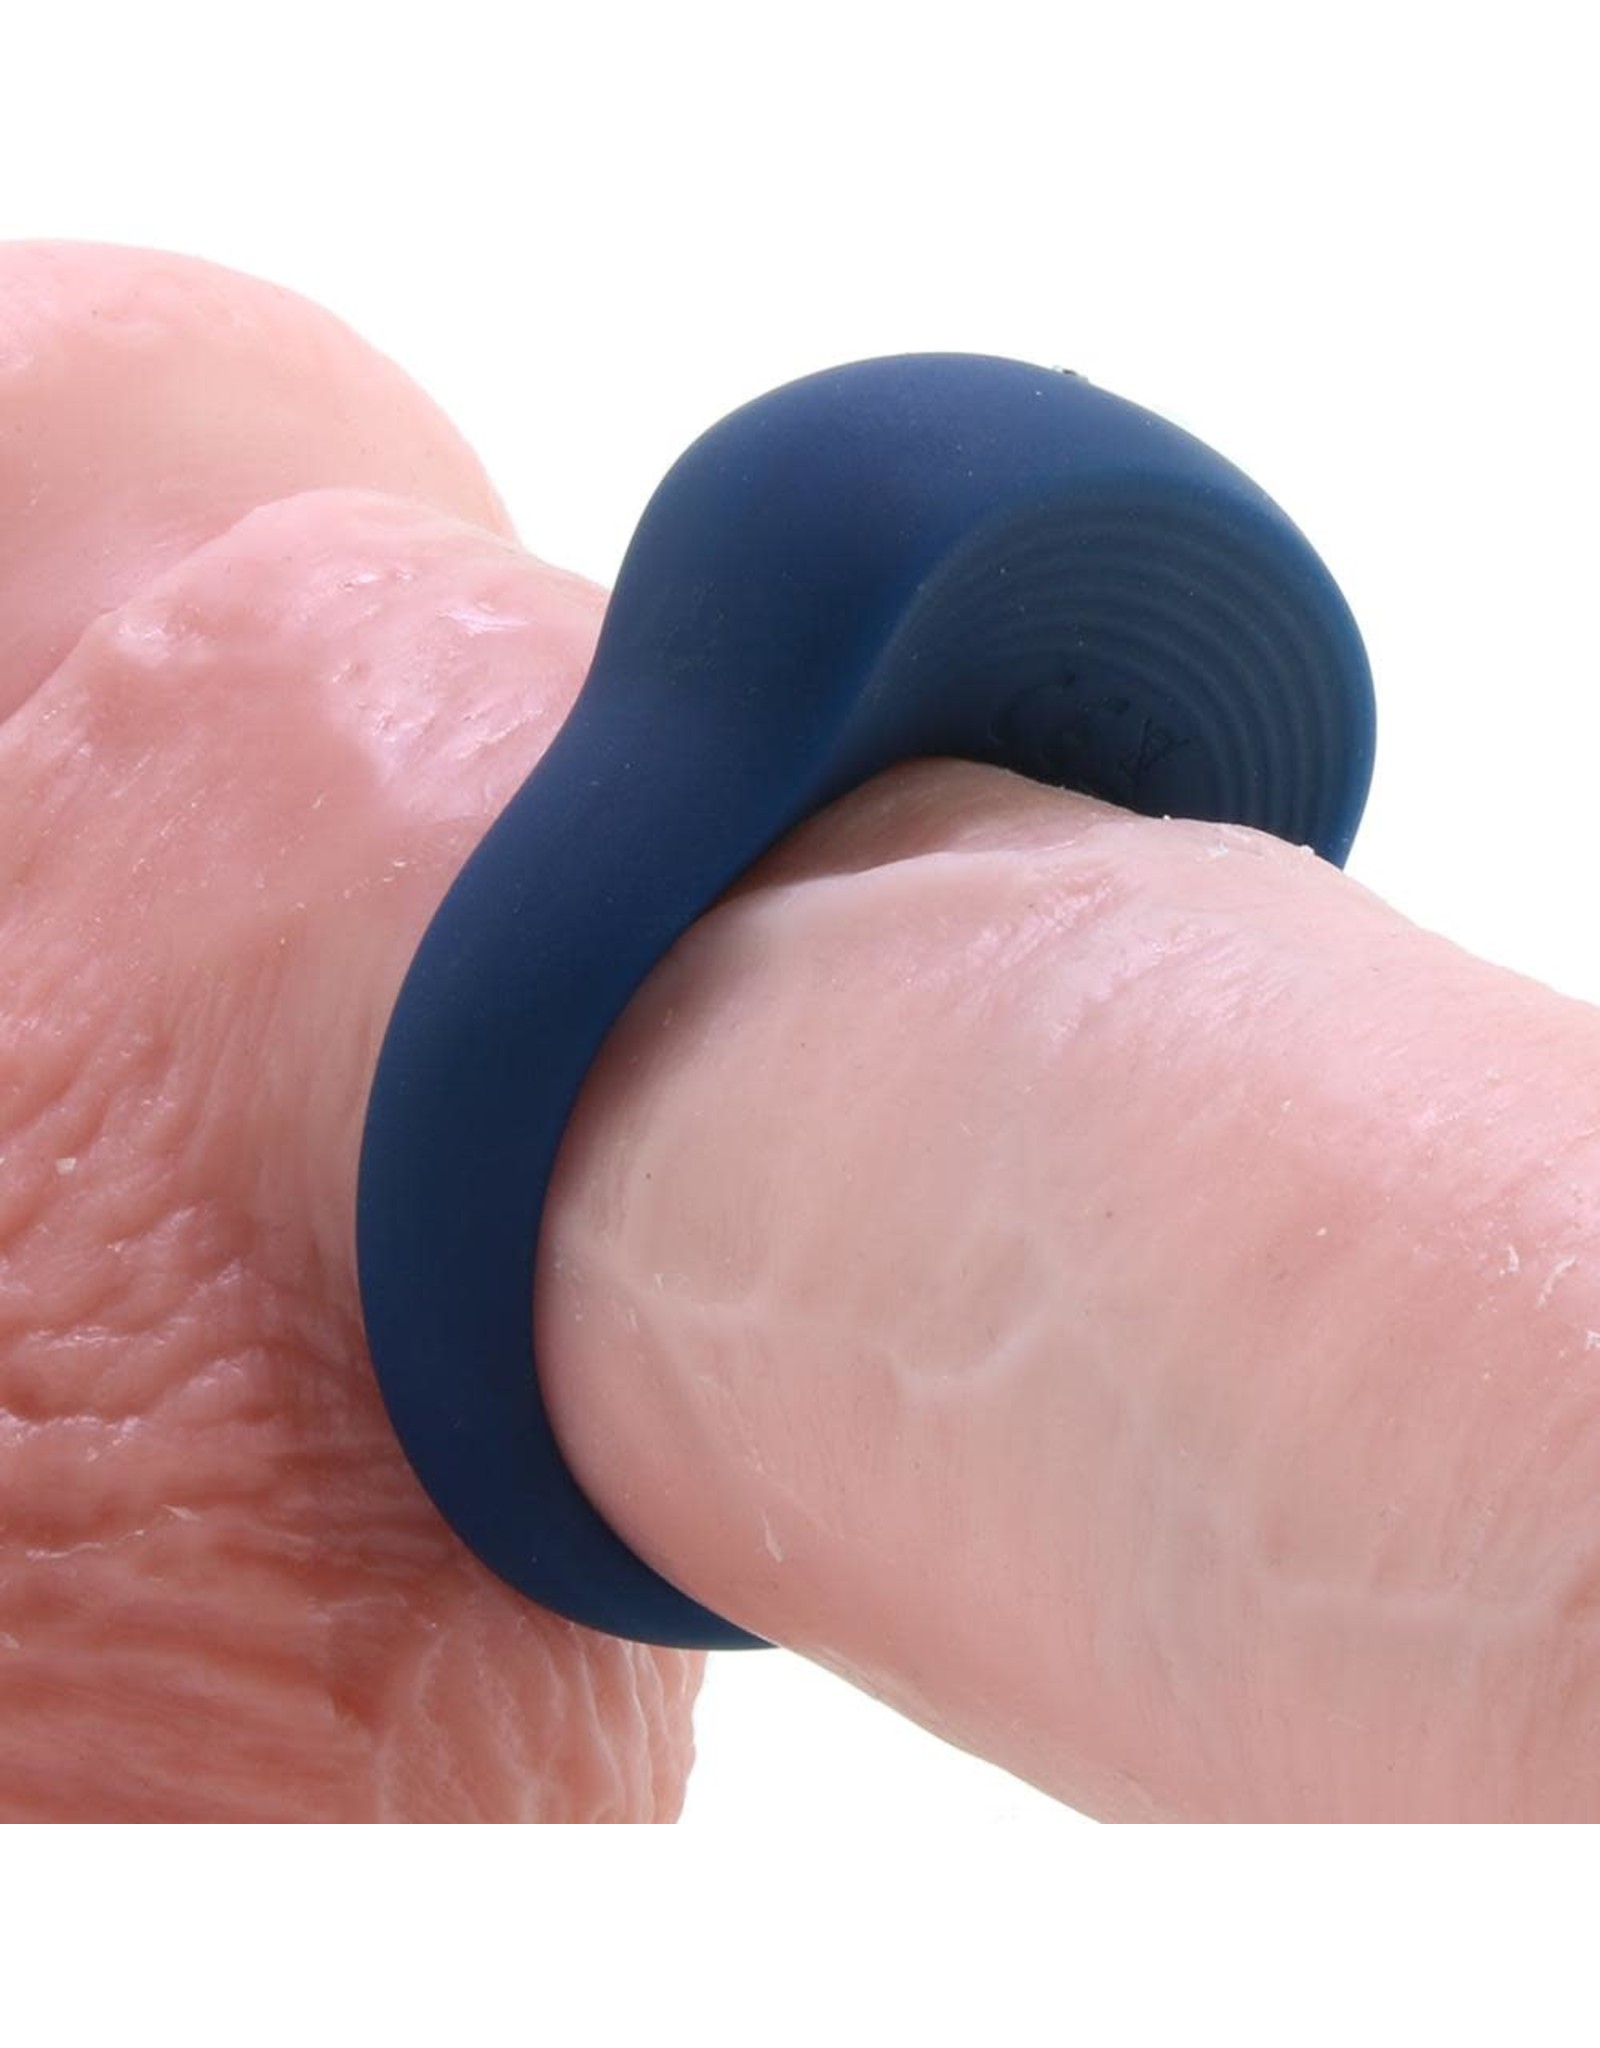 SATISFYER SATISFYER RINGS - POWER RING - BLUE